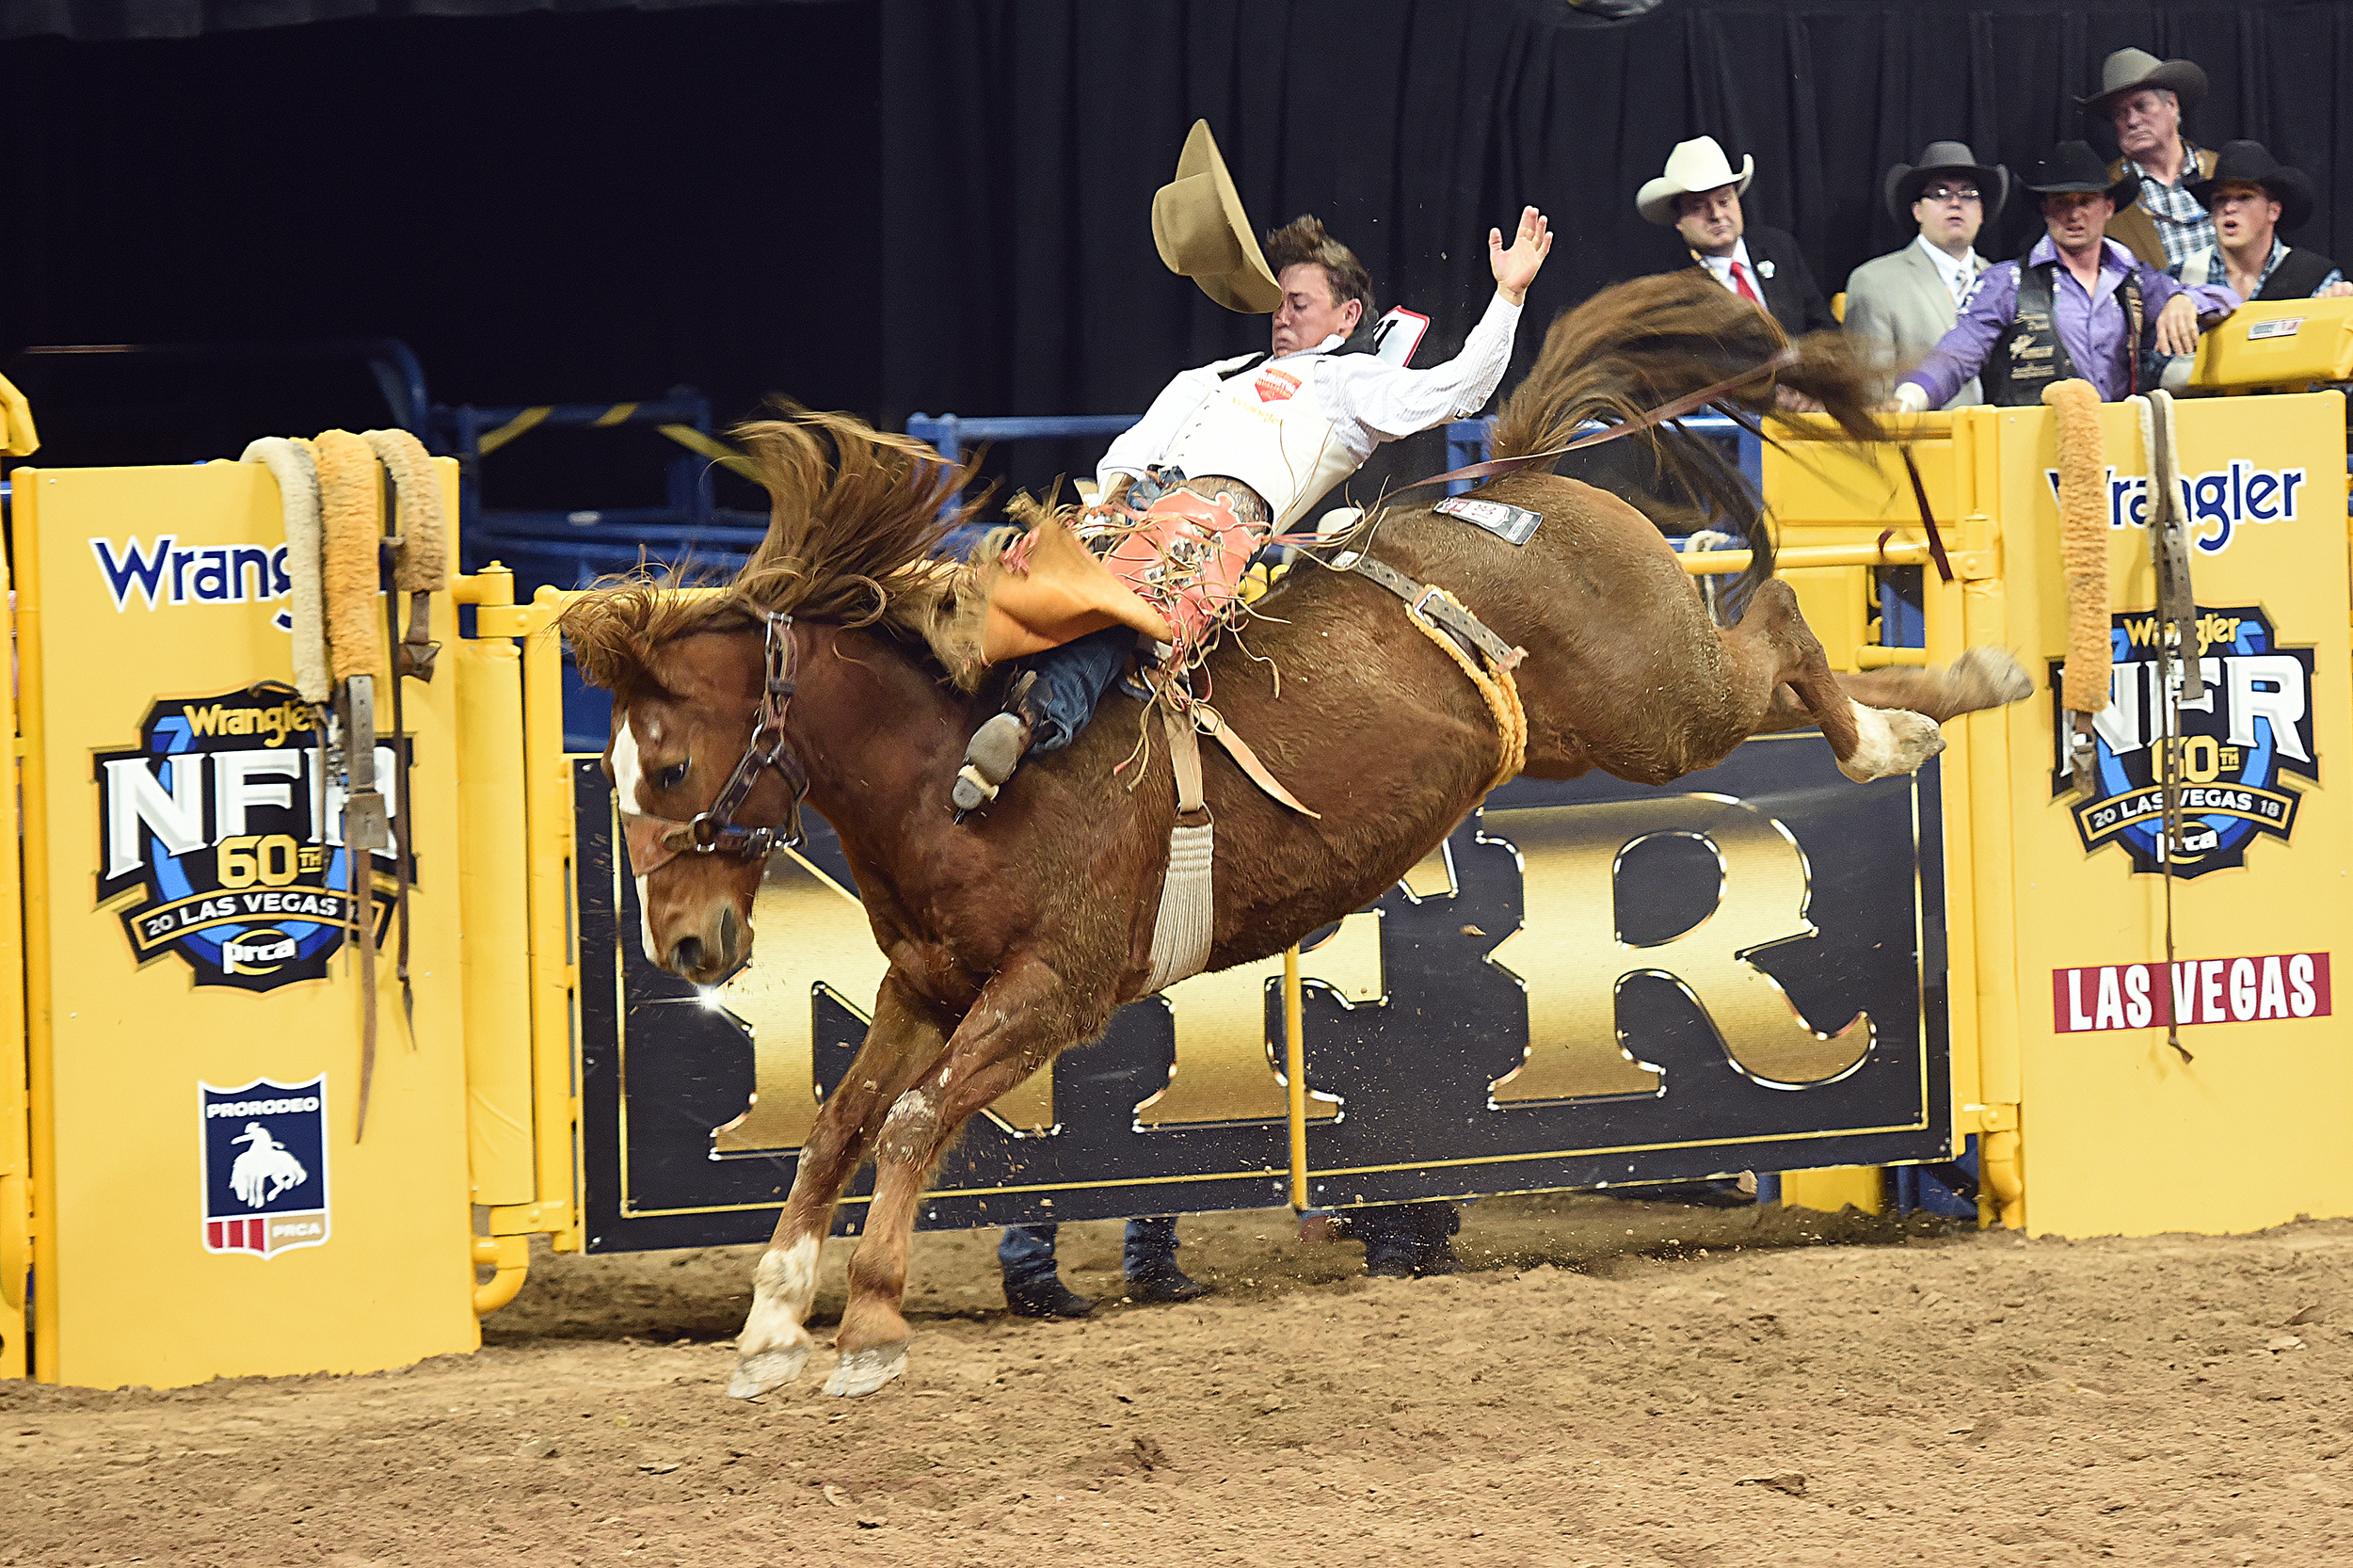 Clayton Biglow rides Frontier Rodeo's Tip Off for 86.5 points to finish third in Friday's second round of the National Finals Rodeo. (PHOTO BY ROBBY FREEMAN)